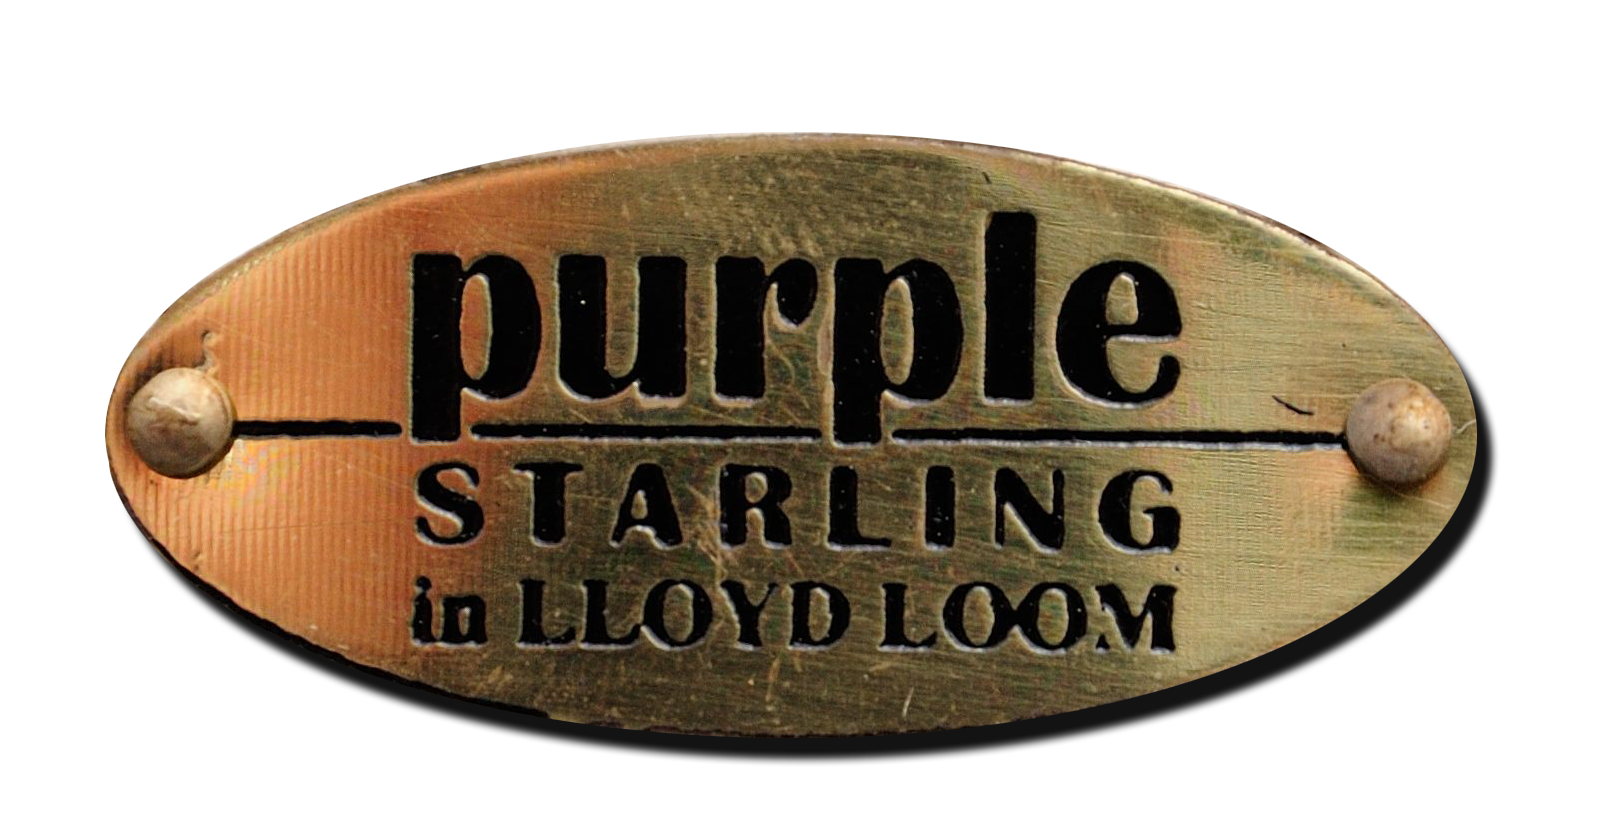 Purple Starling in Lloyd loom logo